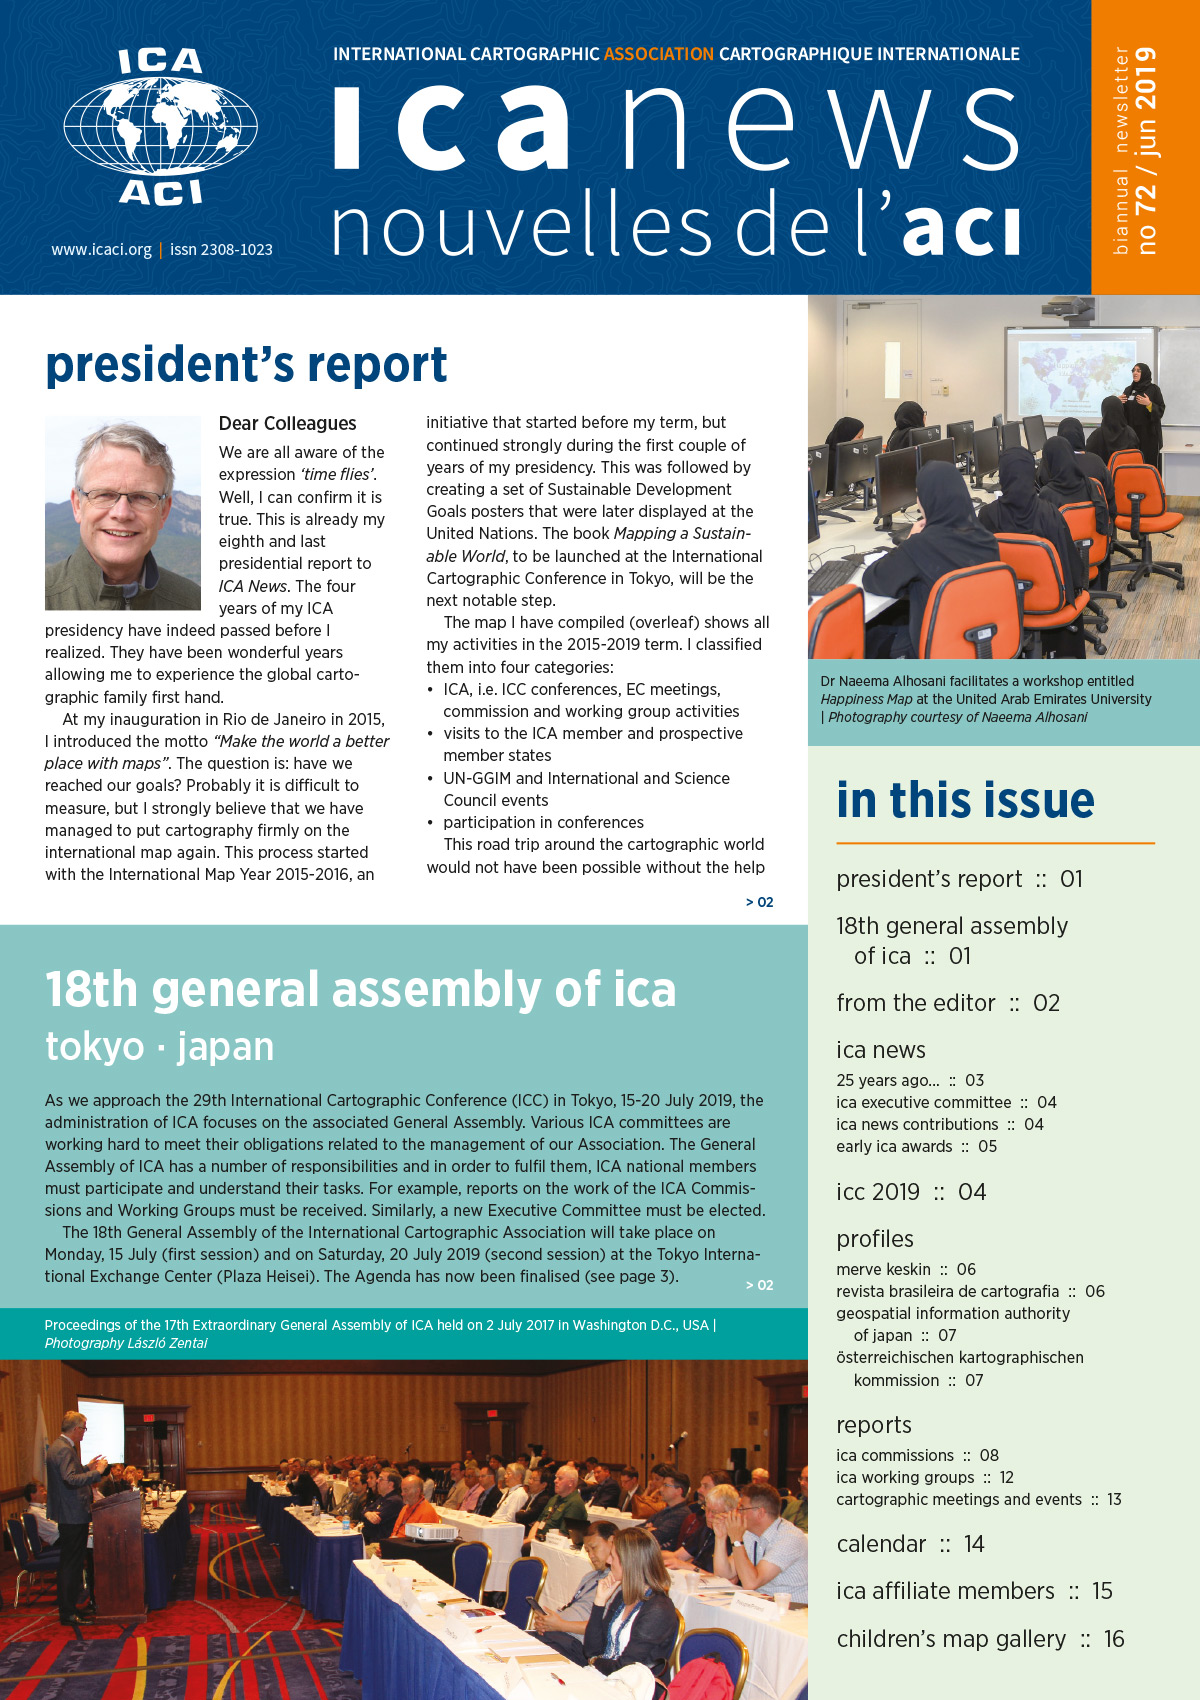 ICA News, Number 72, June 2019